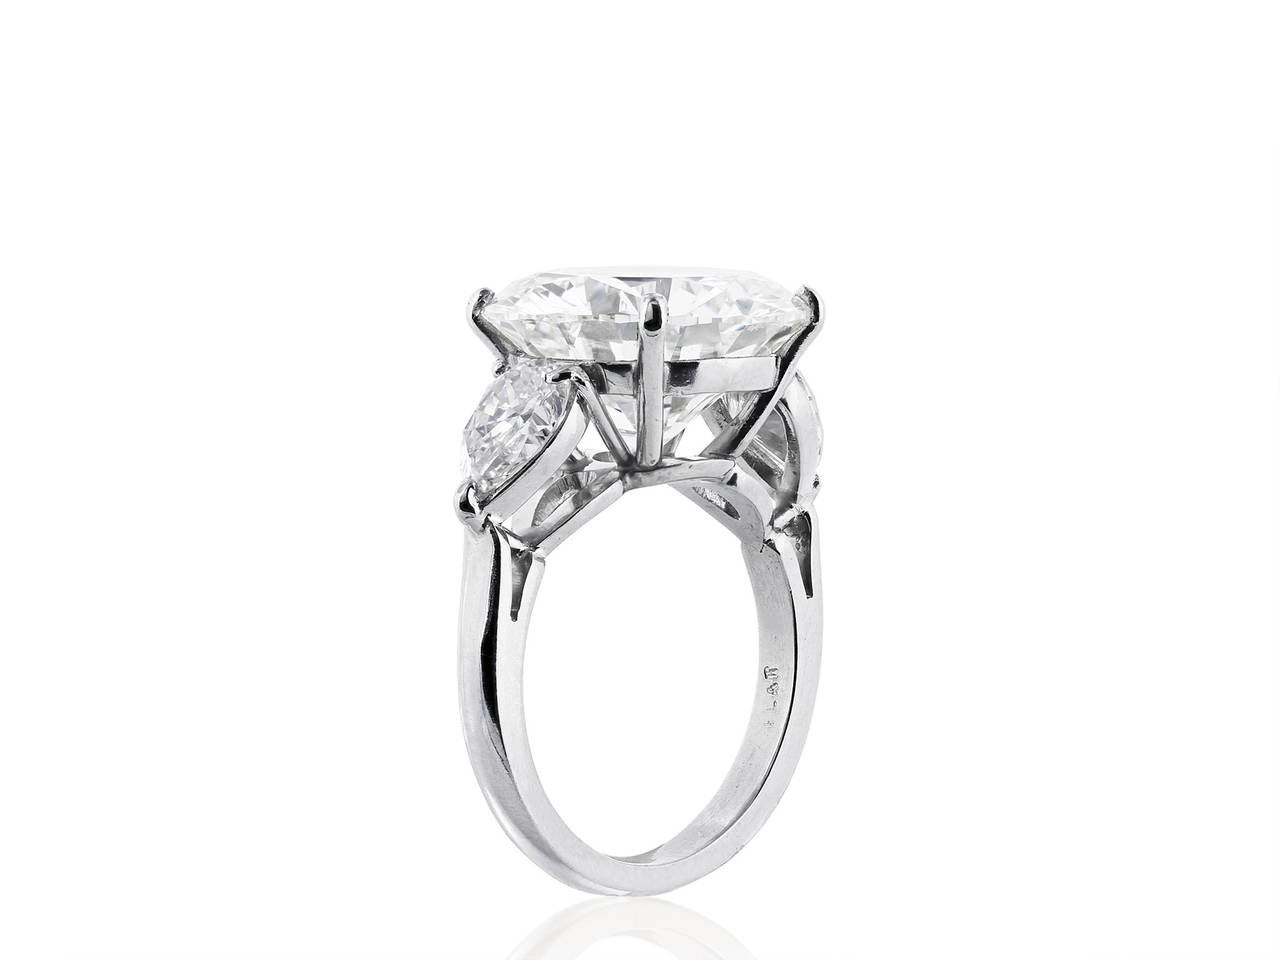 Platinum three stone style engagement ring consisting of one round brilliant cut diamond weighing 9.20 carats, measuring 13.82 - 13.98 x 7.93mm, having a color and clarity of J/VVS2 with GIA report #2165893644 and flanked by two pear cut diamonds,